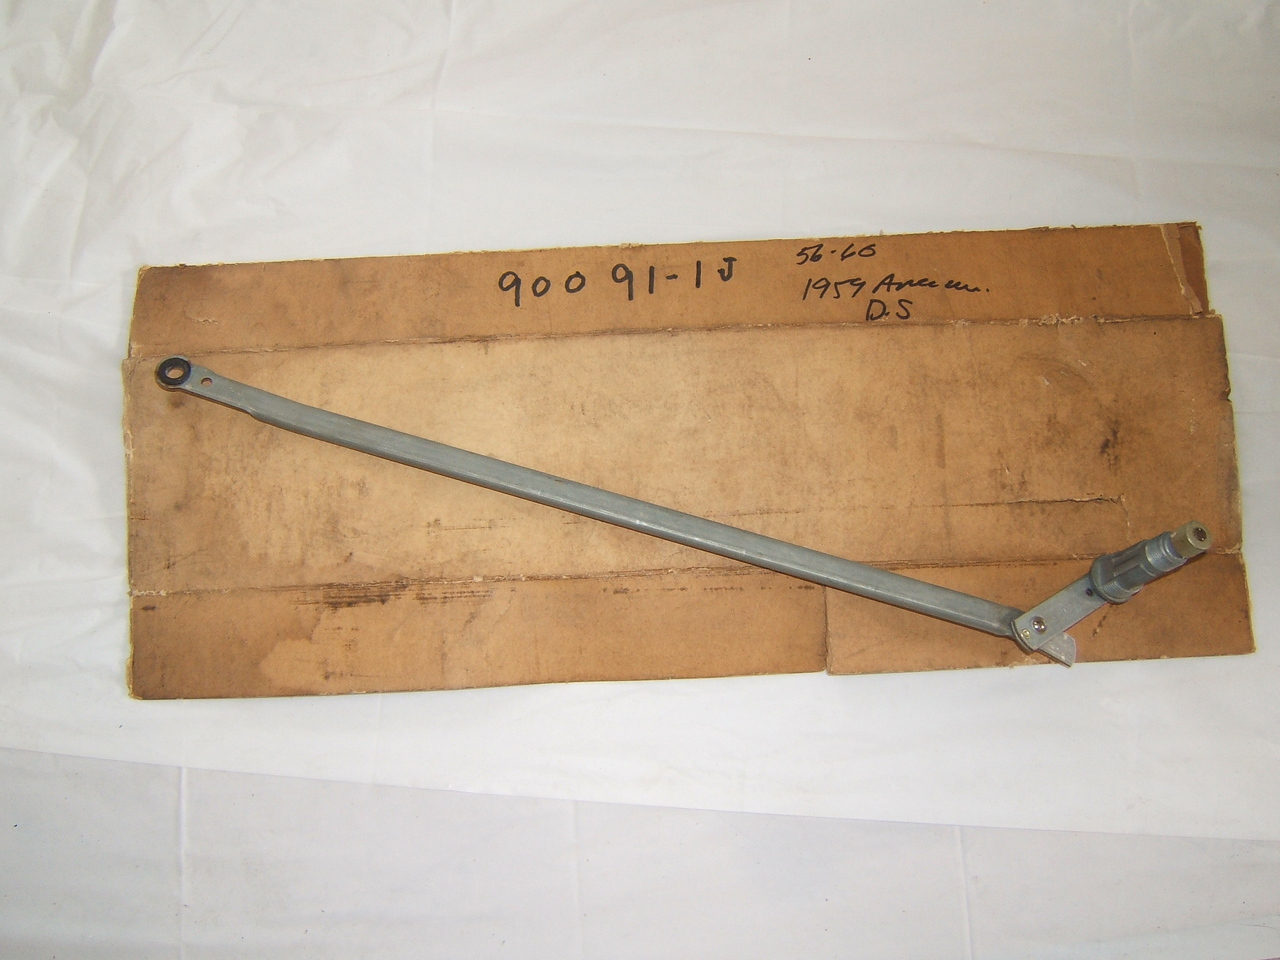 1956 -61 Rambler American windshield wiper linkage nos (a 90091-1j)